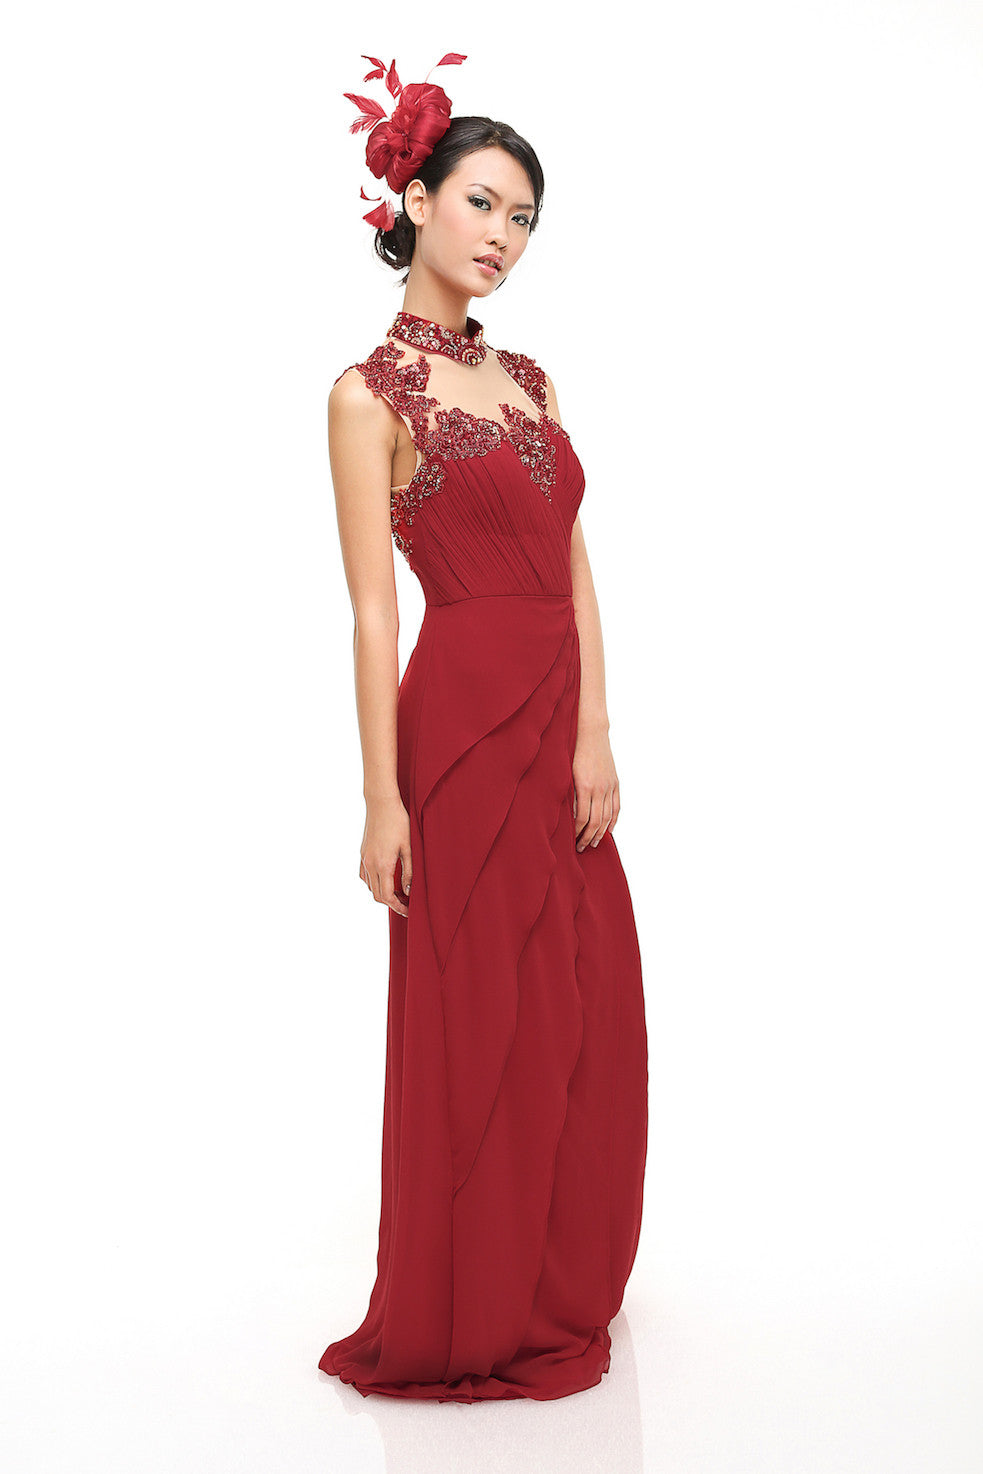 Fluorescence - Buy: Red Beaded Cheongsam Chiffon Dress-The Dresscodes - 1